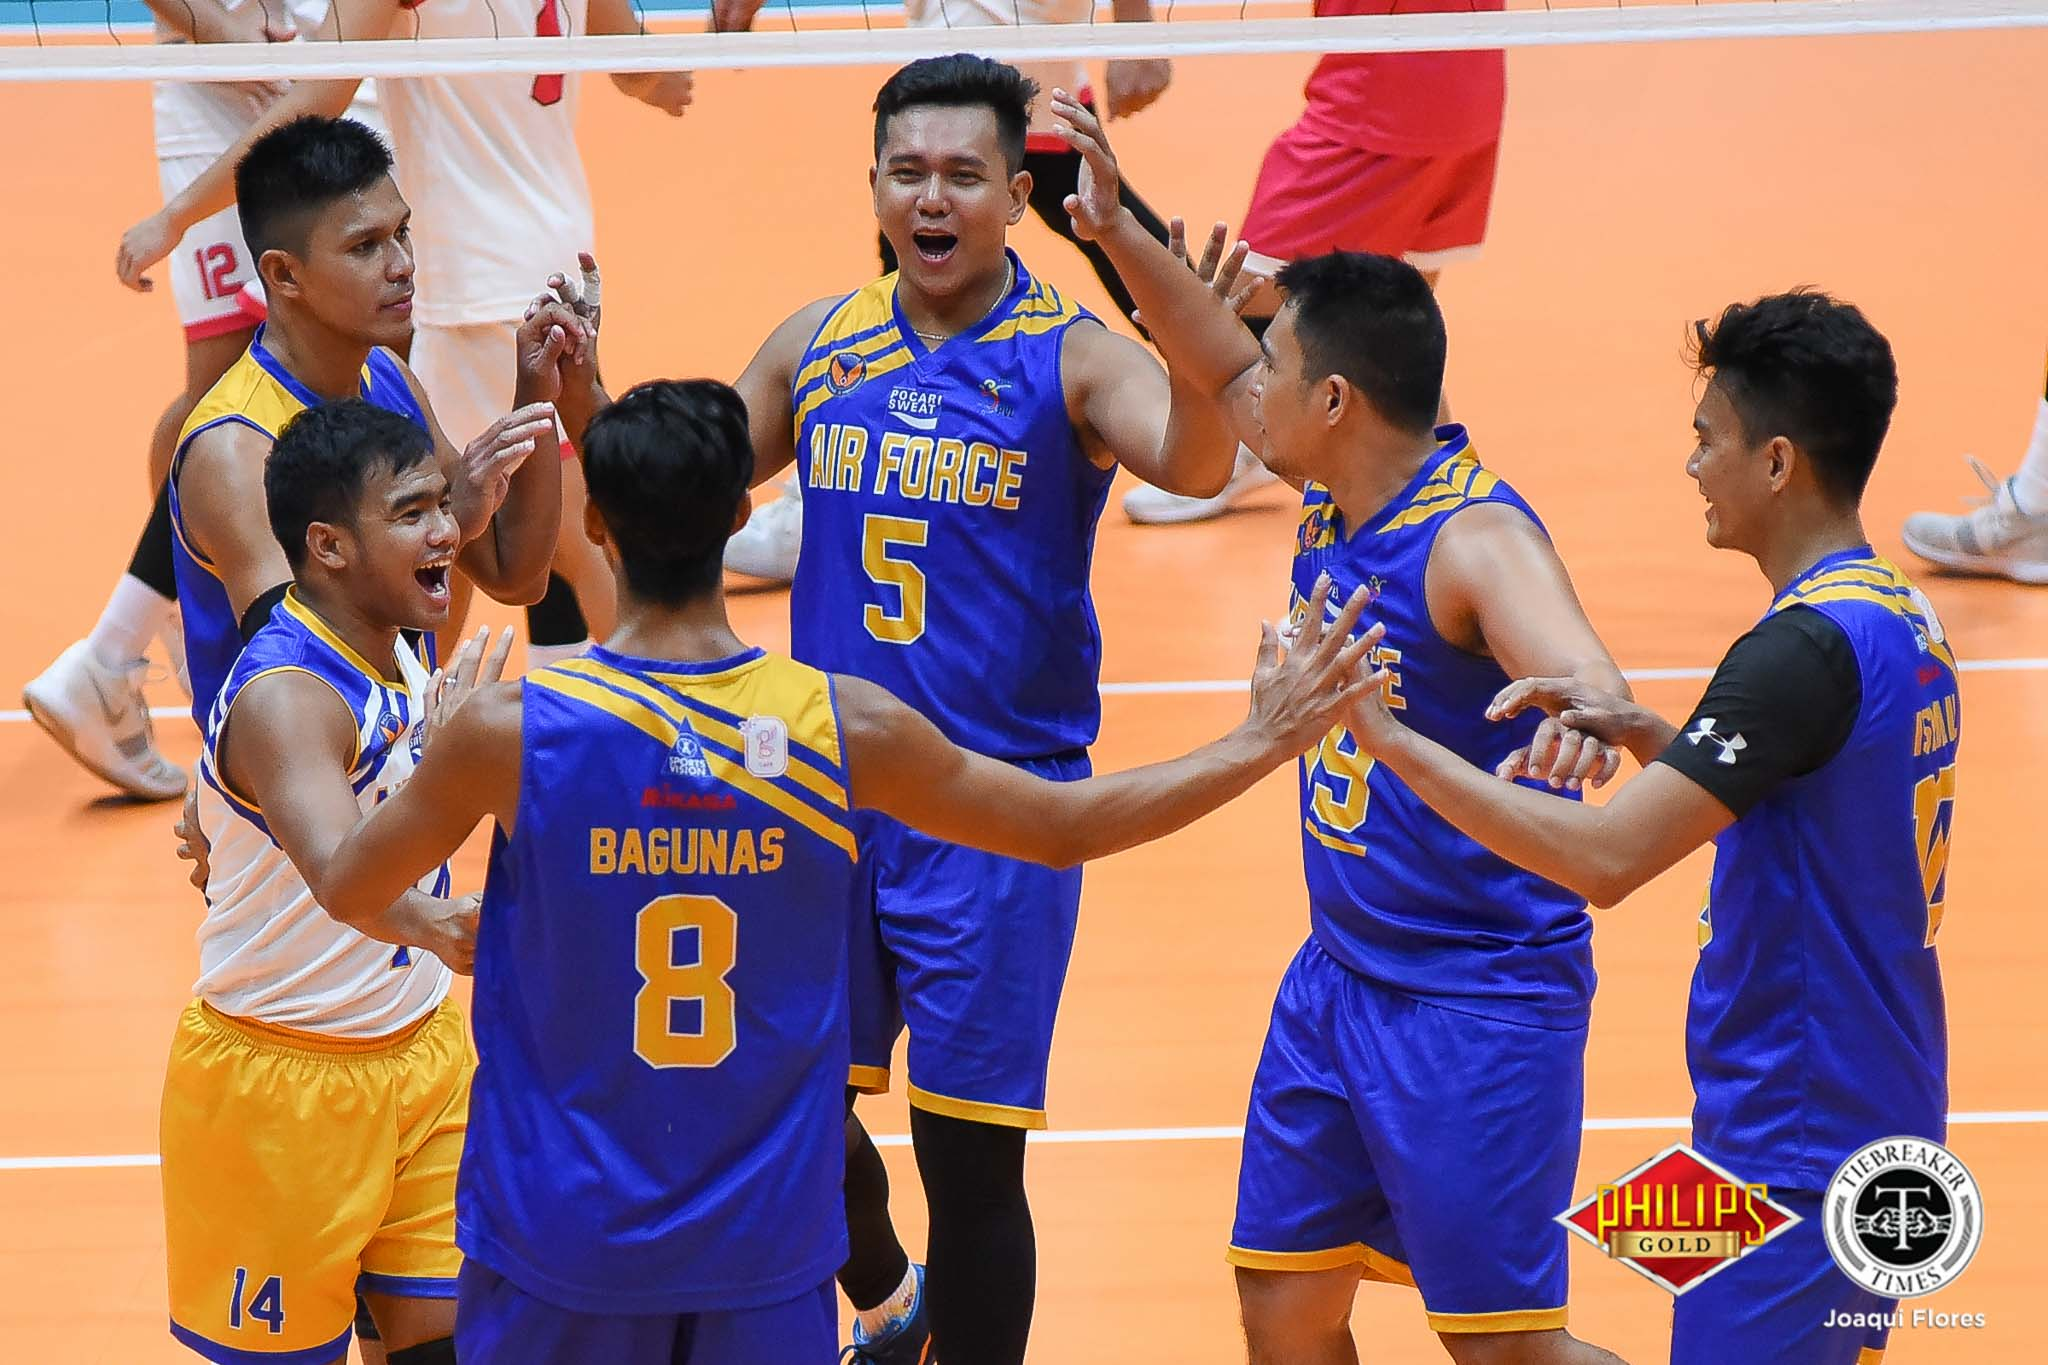 Tiebreaker Times Malabanan steps up for short-handed Air Force, PLDT picks up crucial win over FEU FEU News NU SBC Spikers' Turf Volleyball  Sta. Elena-National University Ball Wreckers San Beda Men's Volleyball Rudolfo Labrador Richard Solis PLDT Home Fibr Power Hitters Pao Pablico Odjie Mamon Nico Almendras Mark Decana Mark Calado Manuel Sumaguid Kim Malabunga Joshua Umandal JM Ronquillo Jessie Lopez Jeffrey Malabanan Jeffrey Losa FEU Men's Volleyball Edward Camposano Dong dela Cruz Banjo Mondero 2019 Spikers Turf Season 2019 Spikers Turf Open Conference